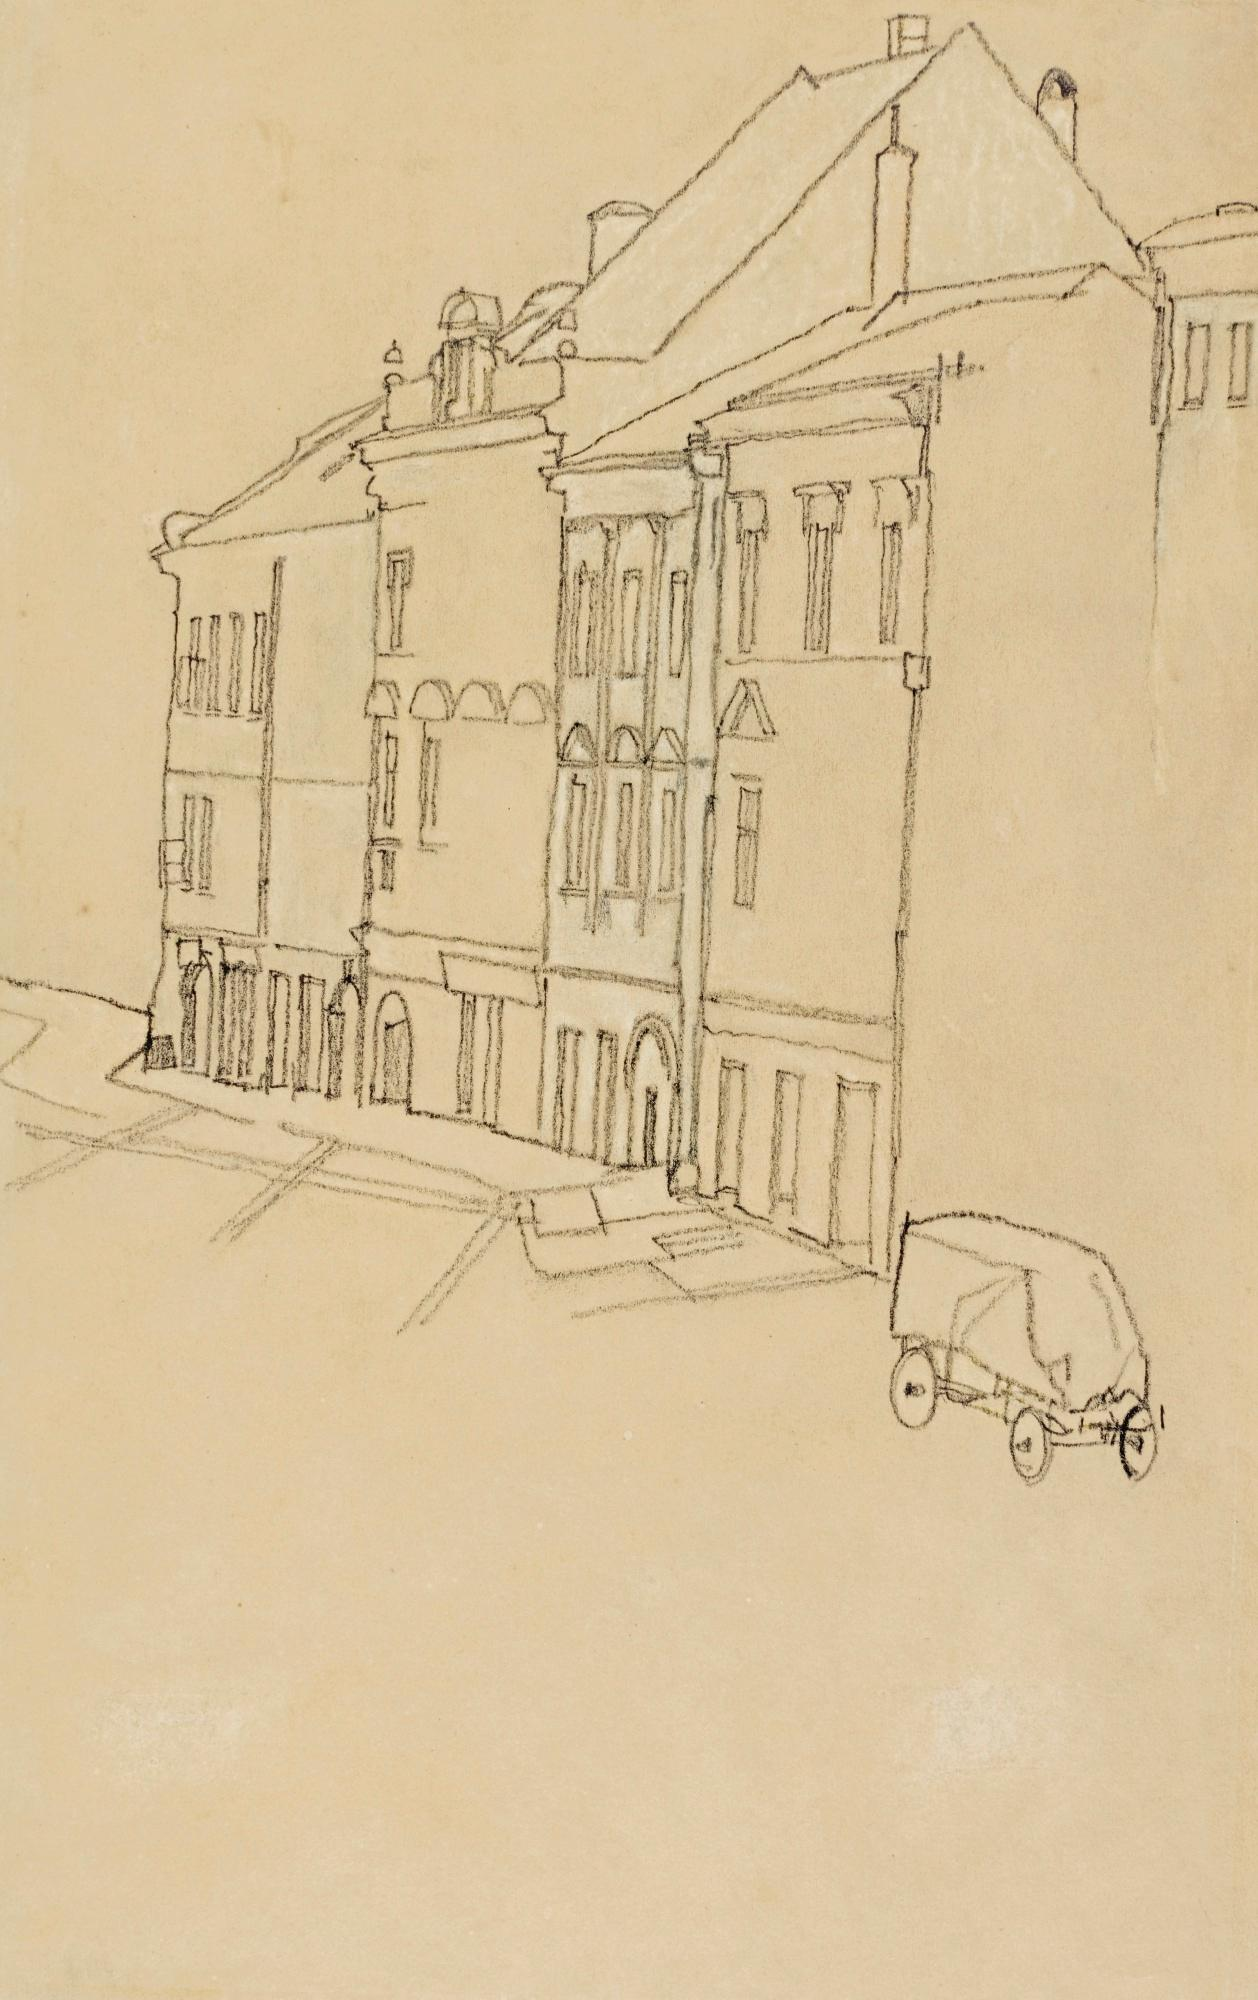 H?user In Krumau (Houses In Krumau) by Egon Schiele